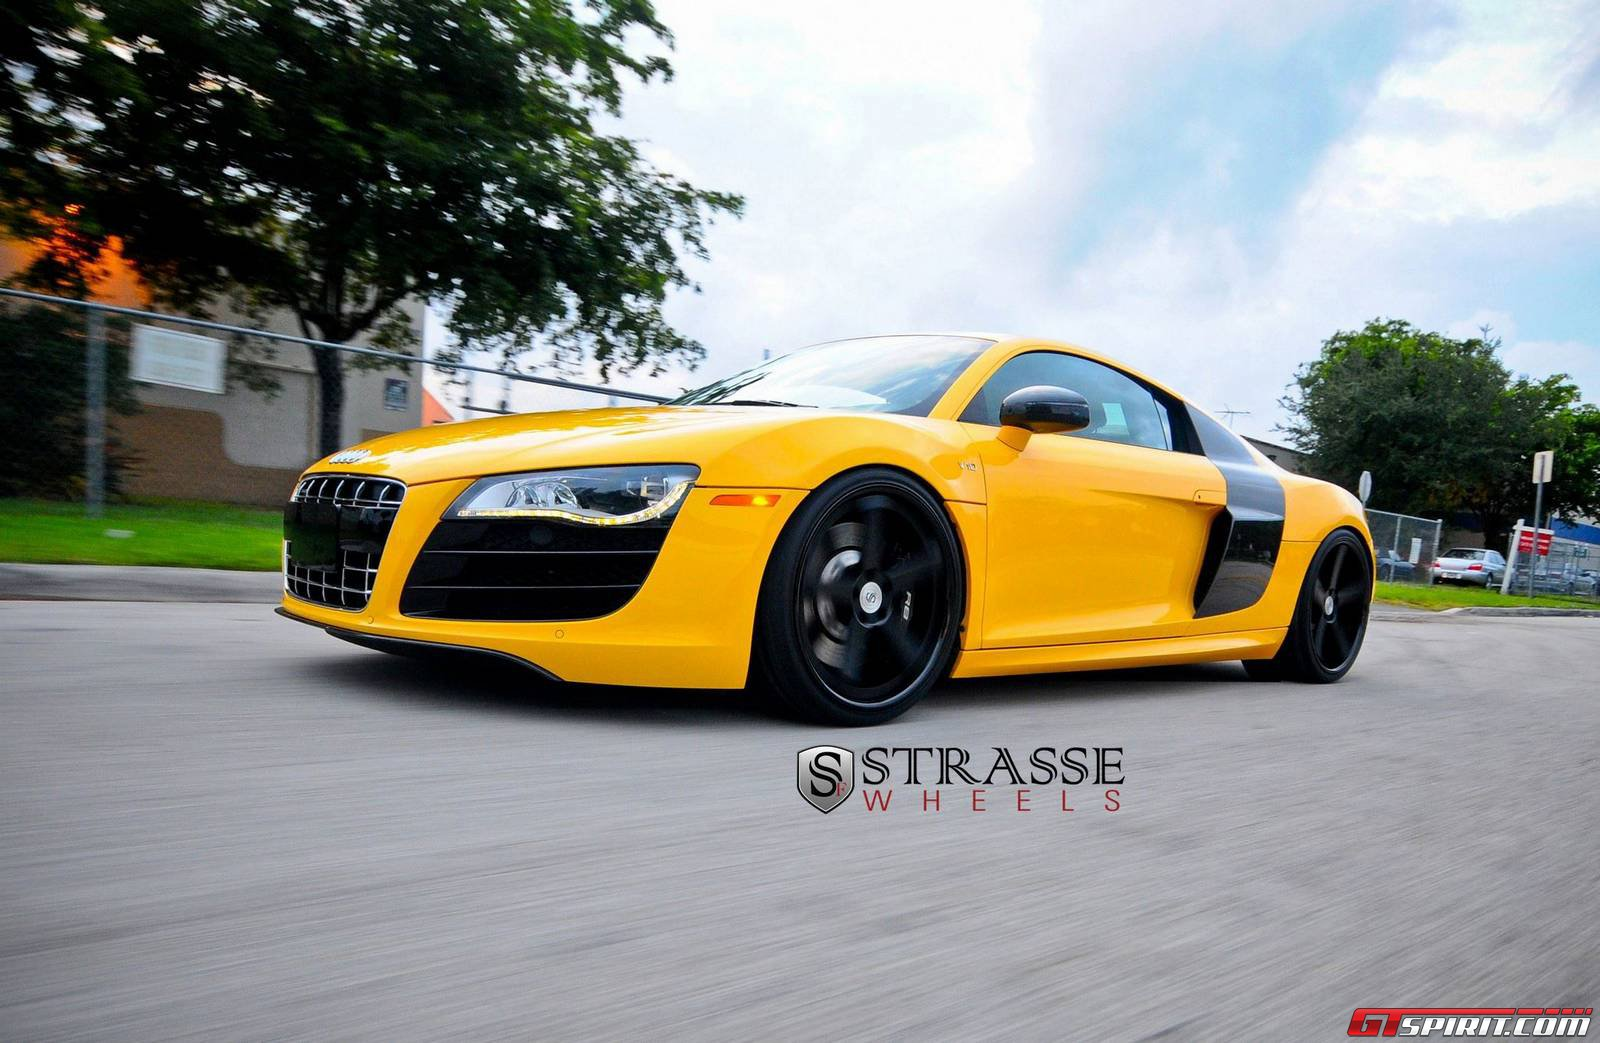 Imola Yellow Audi R8 V10 Plus Lowered On Strasse Forged Wheels Gtspirit